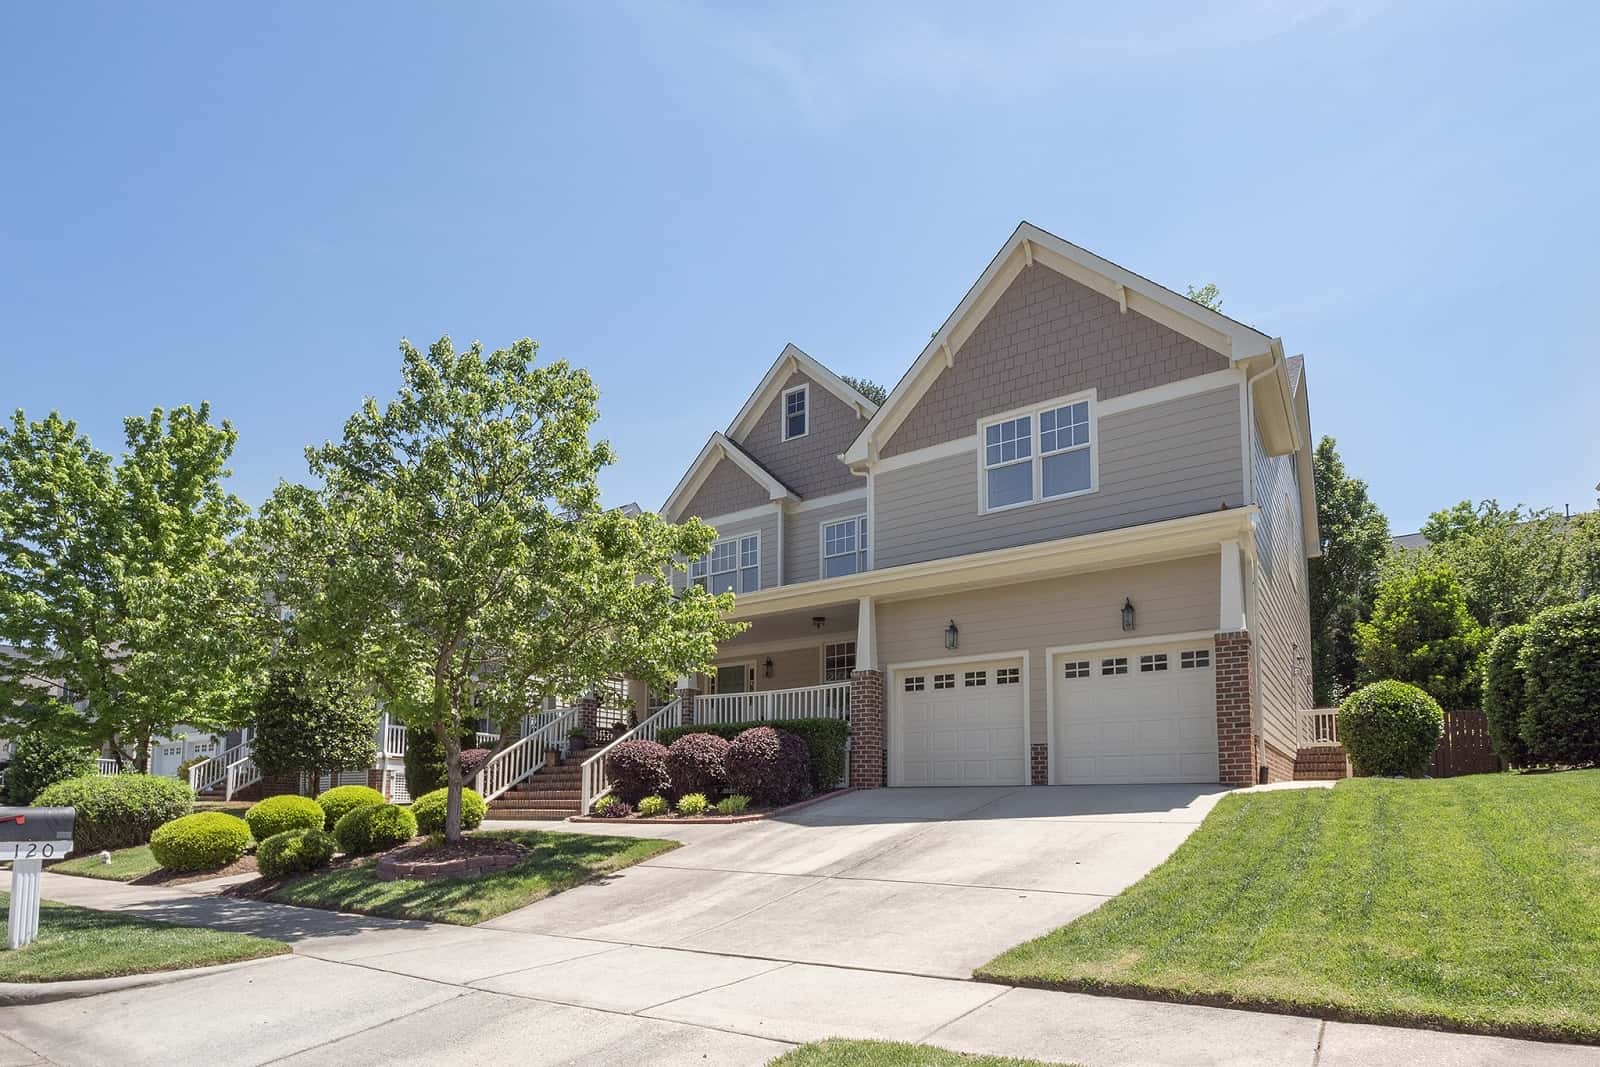 Real Estate Photography in Cary - NC - USA - Front View